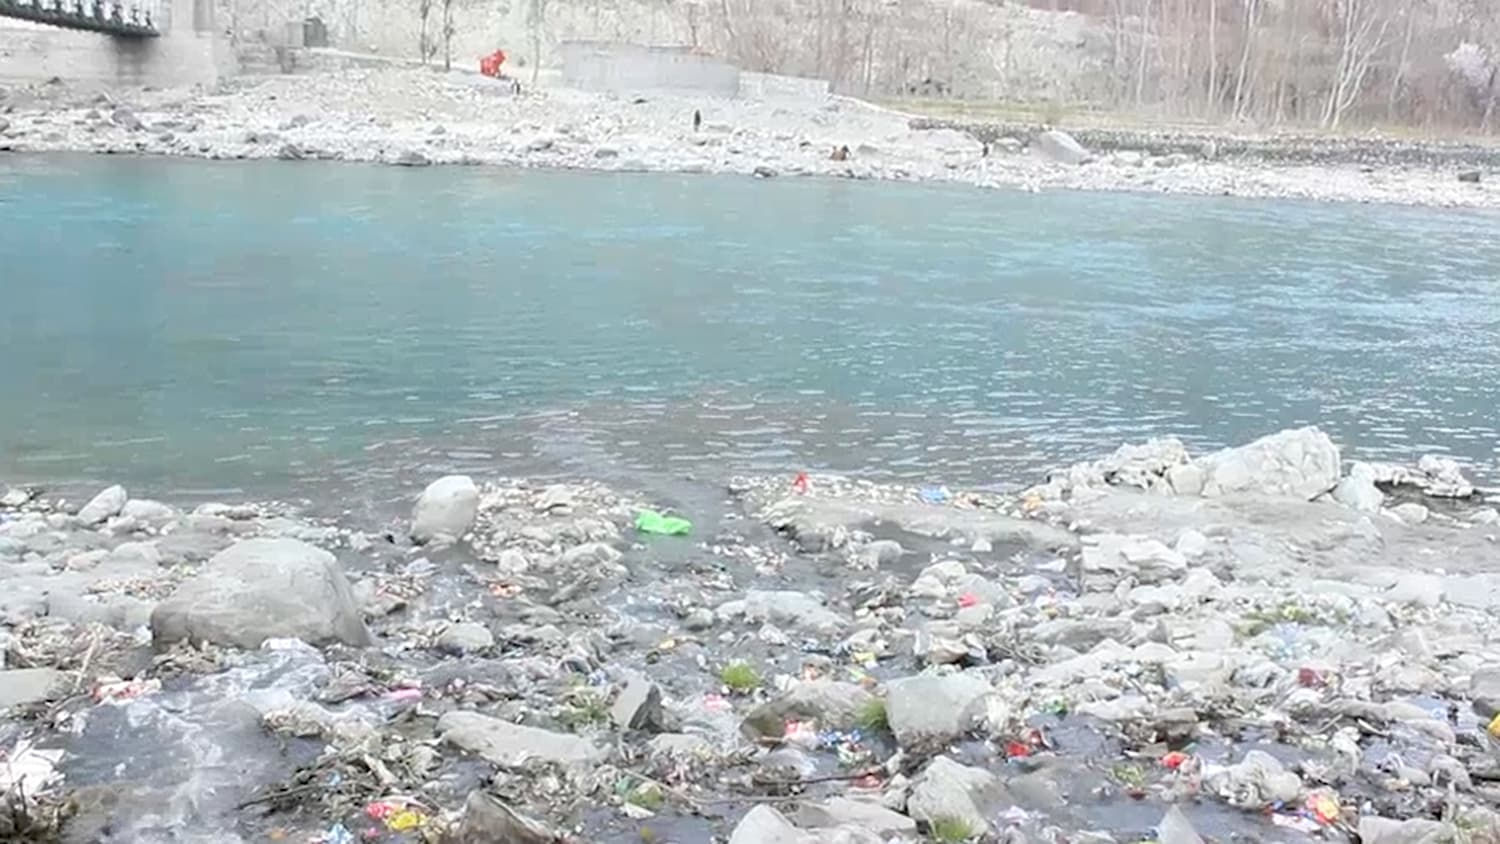 The once potable Gilgit River is now contaminated by garbage from the banks and wastewater from the city.